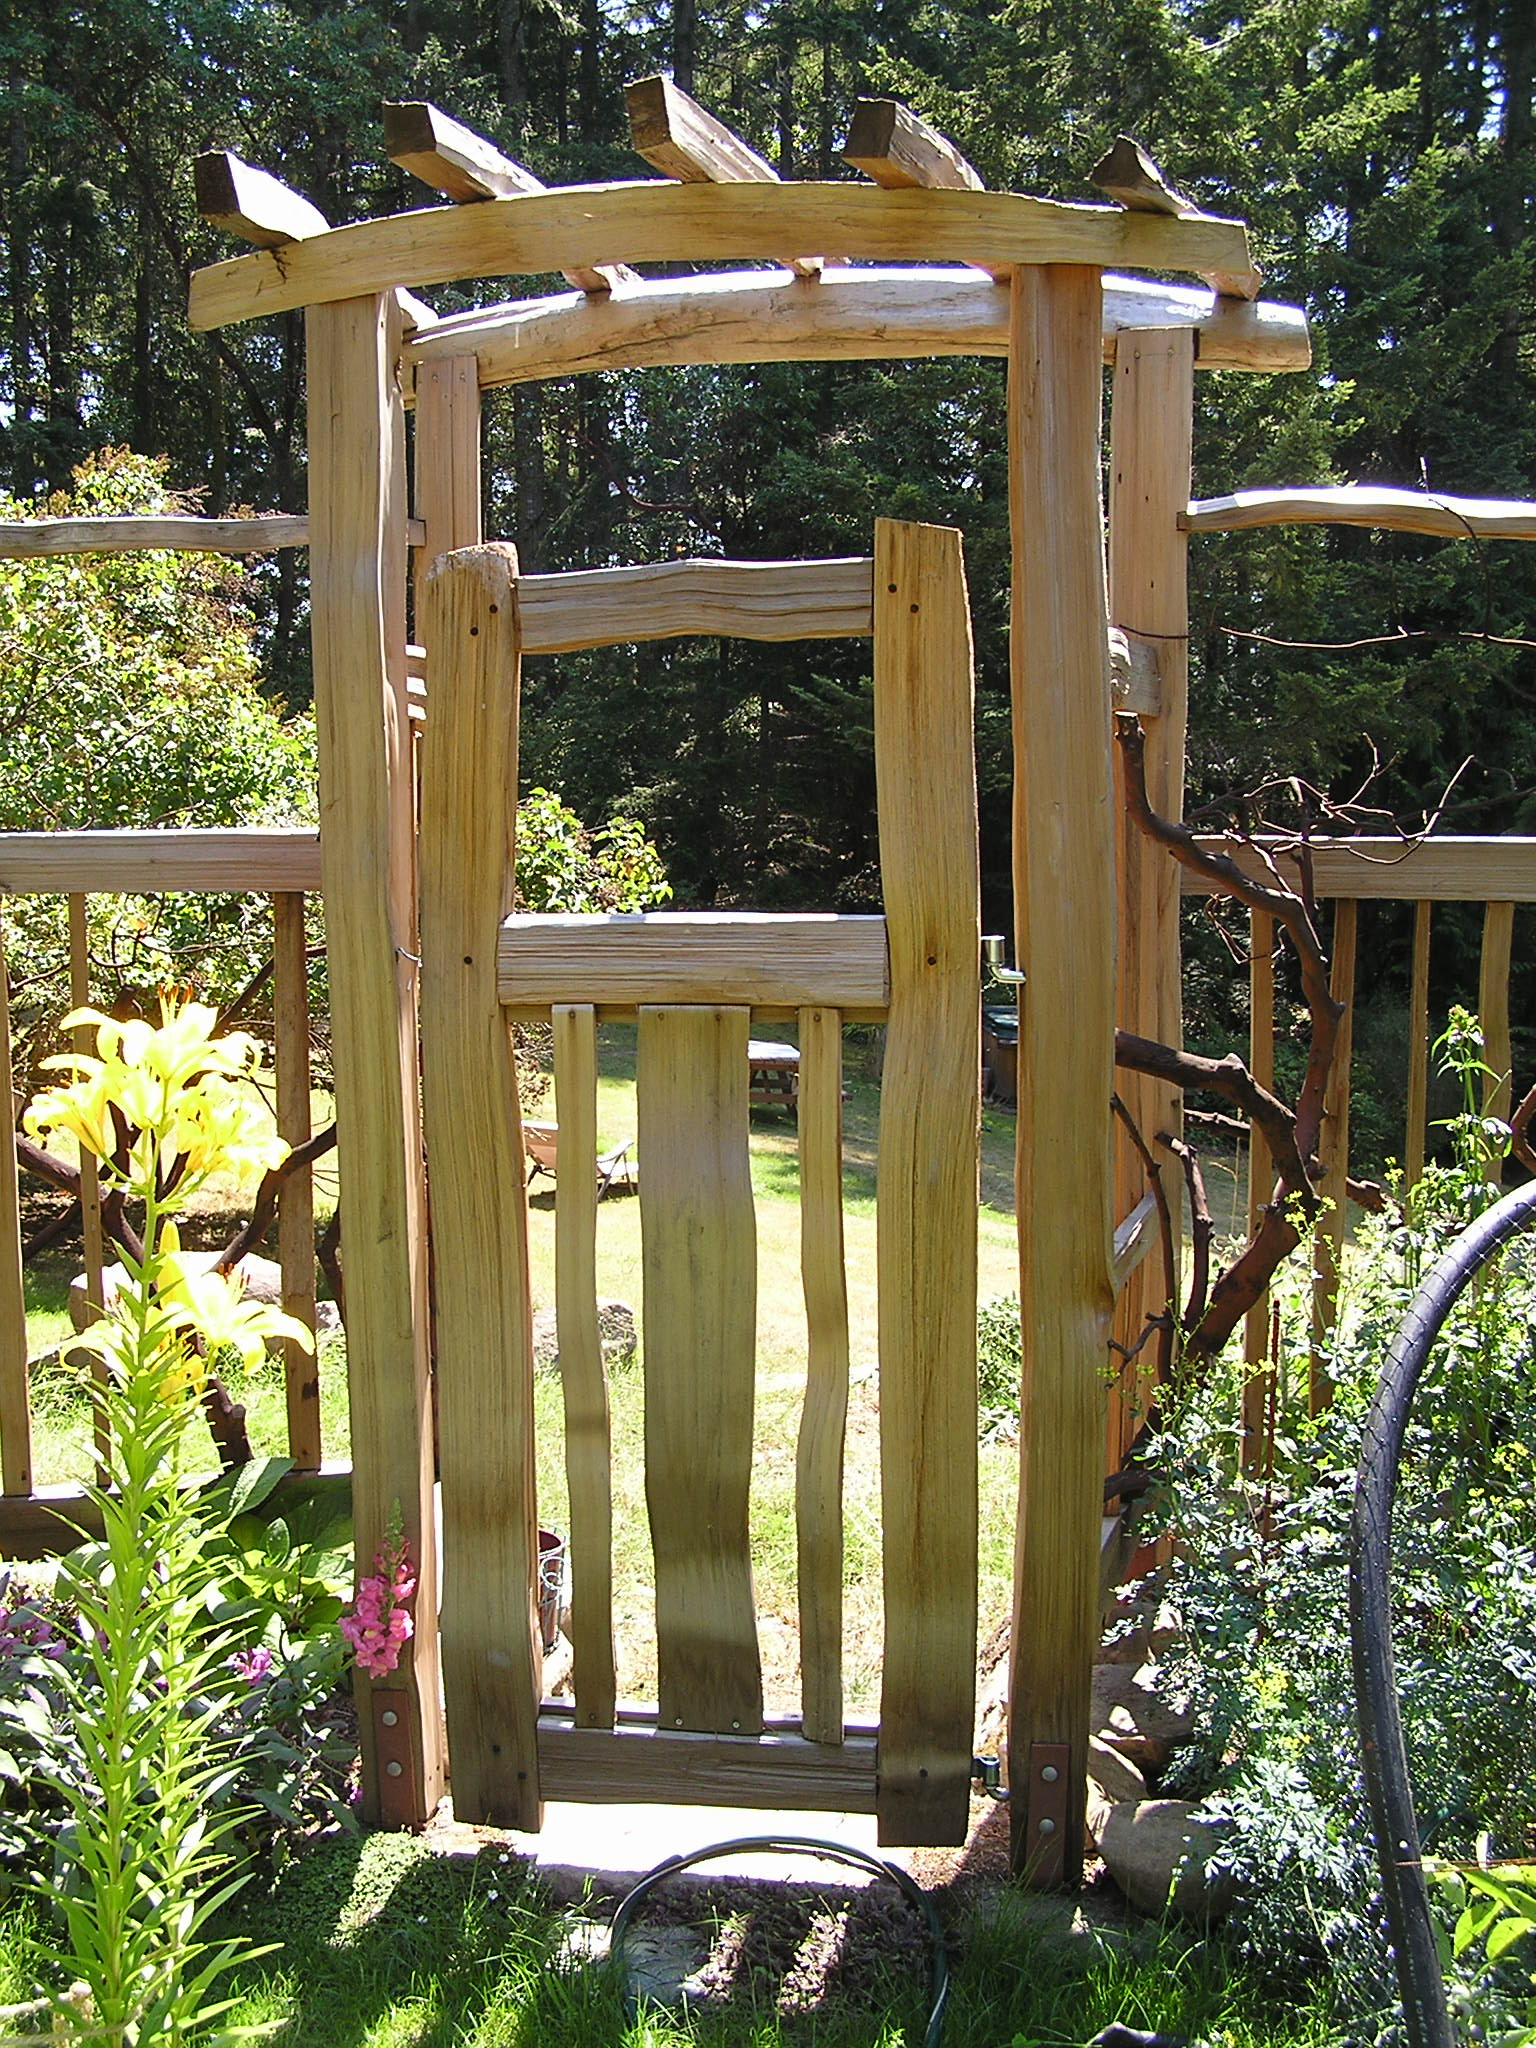 How To Build A Garden Gate Trellis